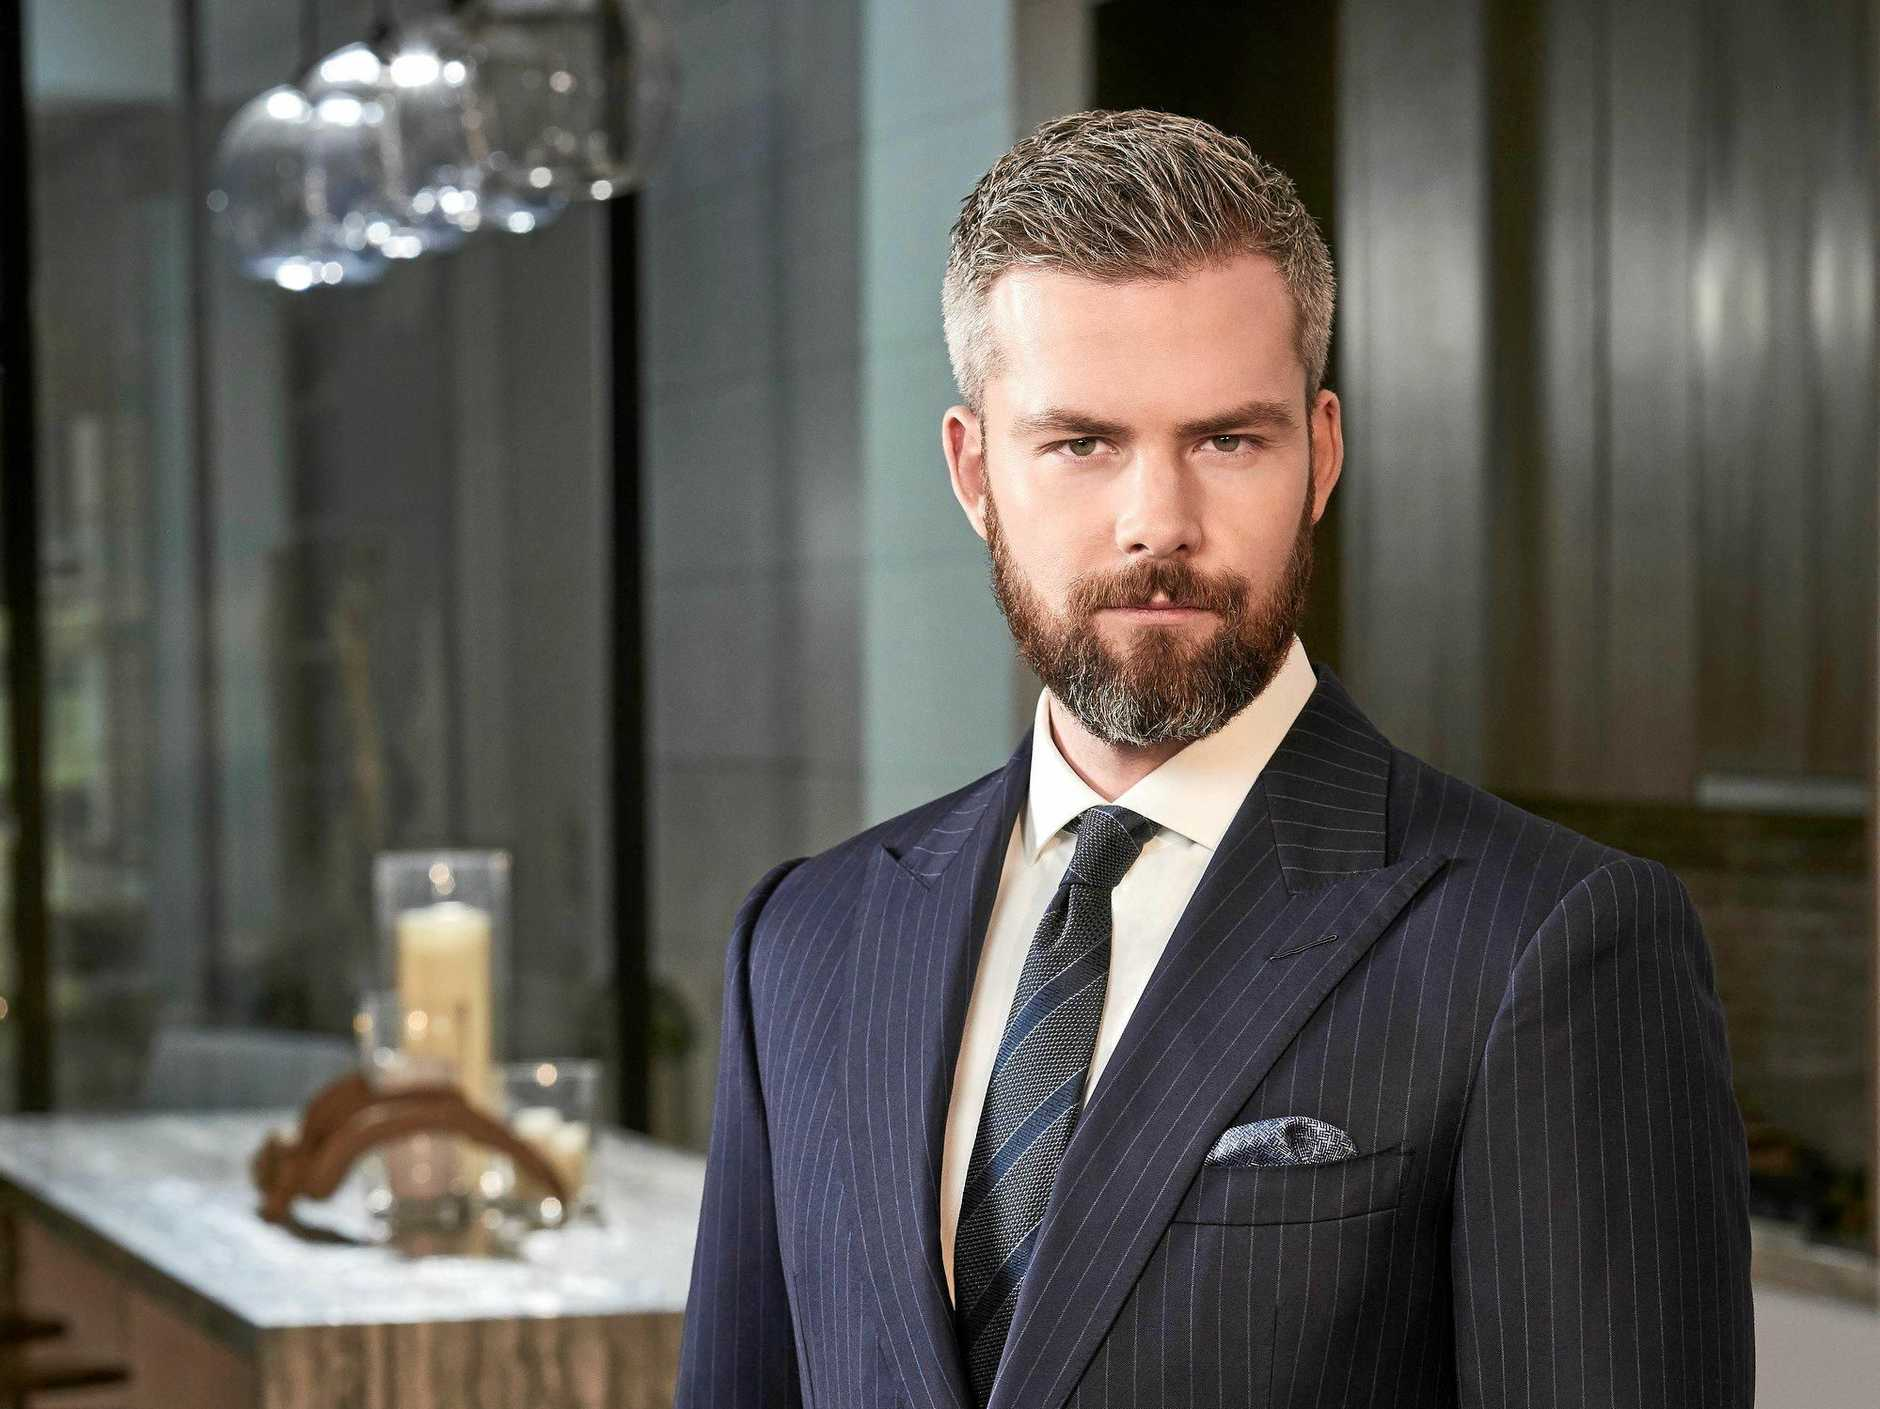 Ryan Serhant stars in Million Dollar Listing New York and is filming a new series, Sell It Like Serhant.